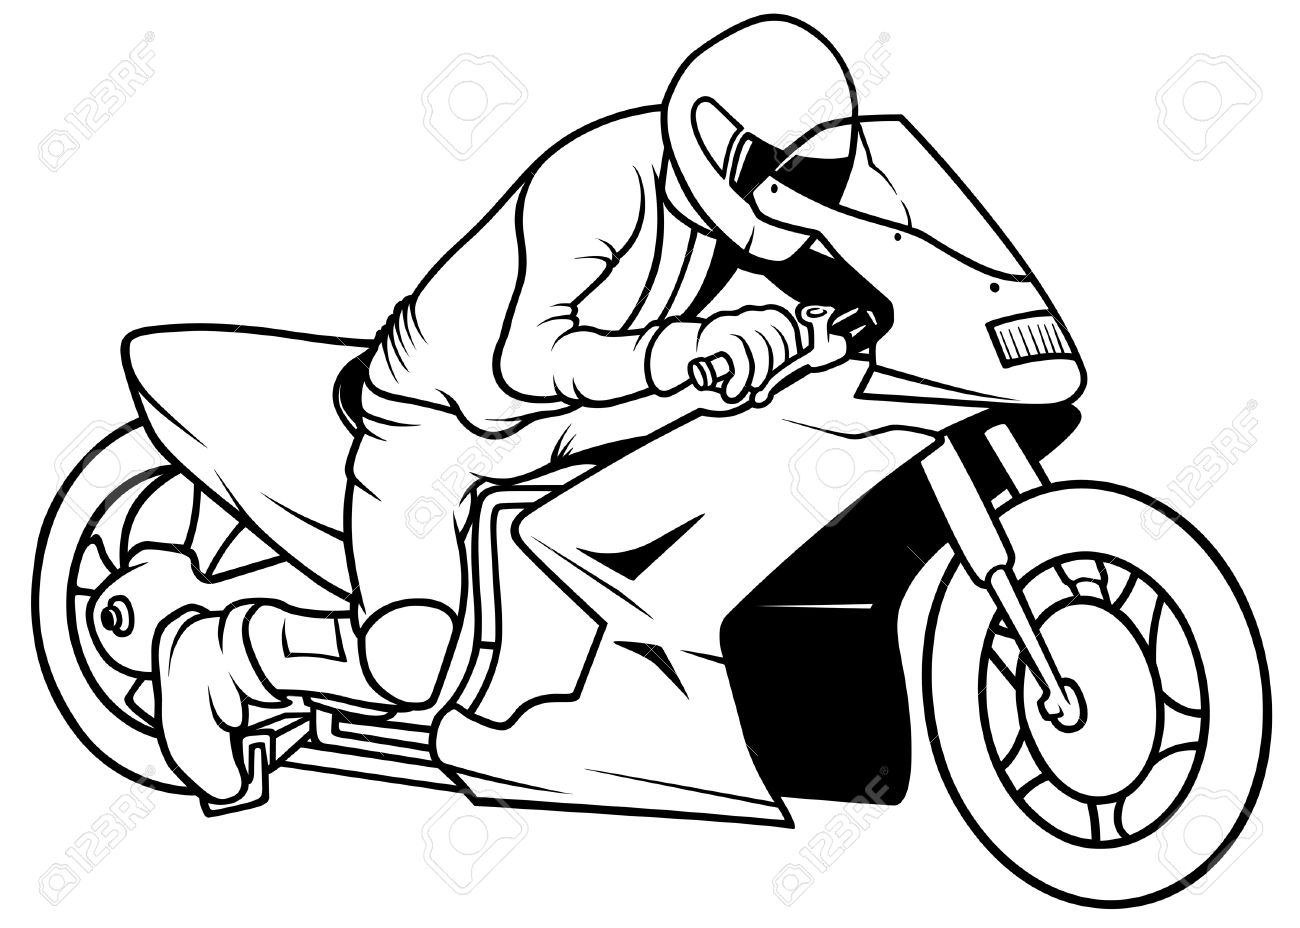 Motorcycle Racing, Hand Drawn Illustration Royalty Free Cliparts ... for Racing Motorcycle Clipart Black And White  183qdu